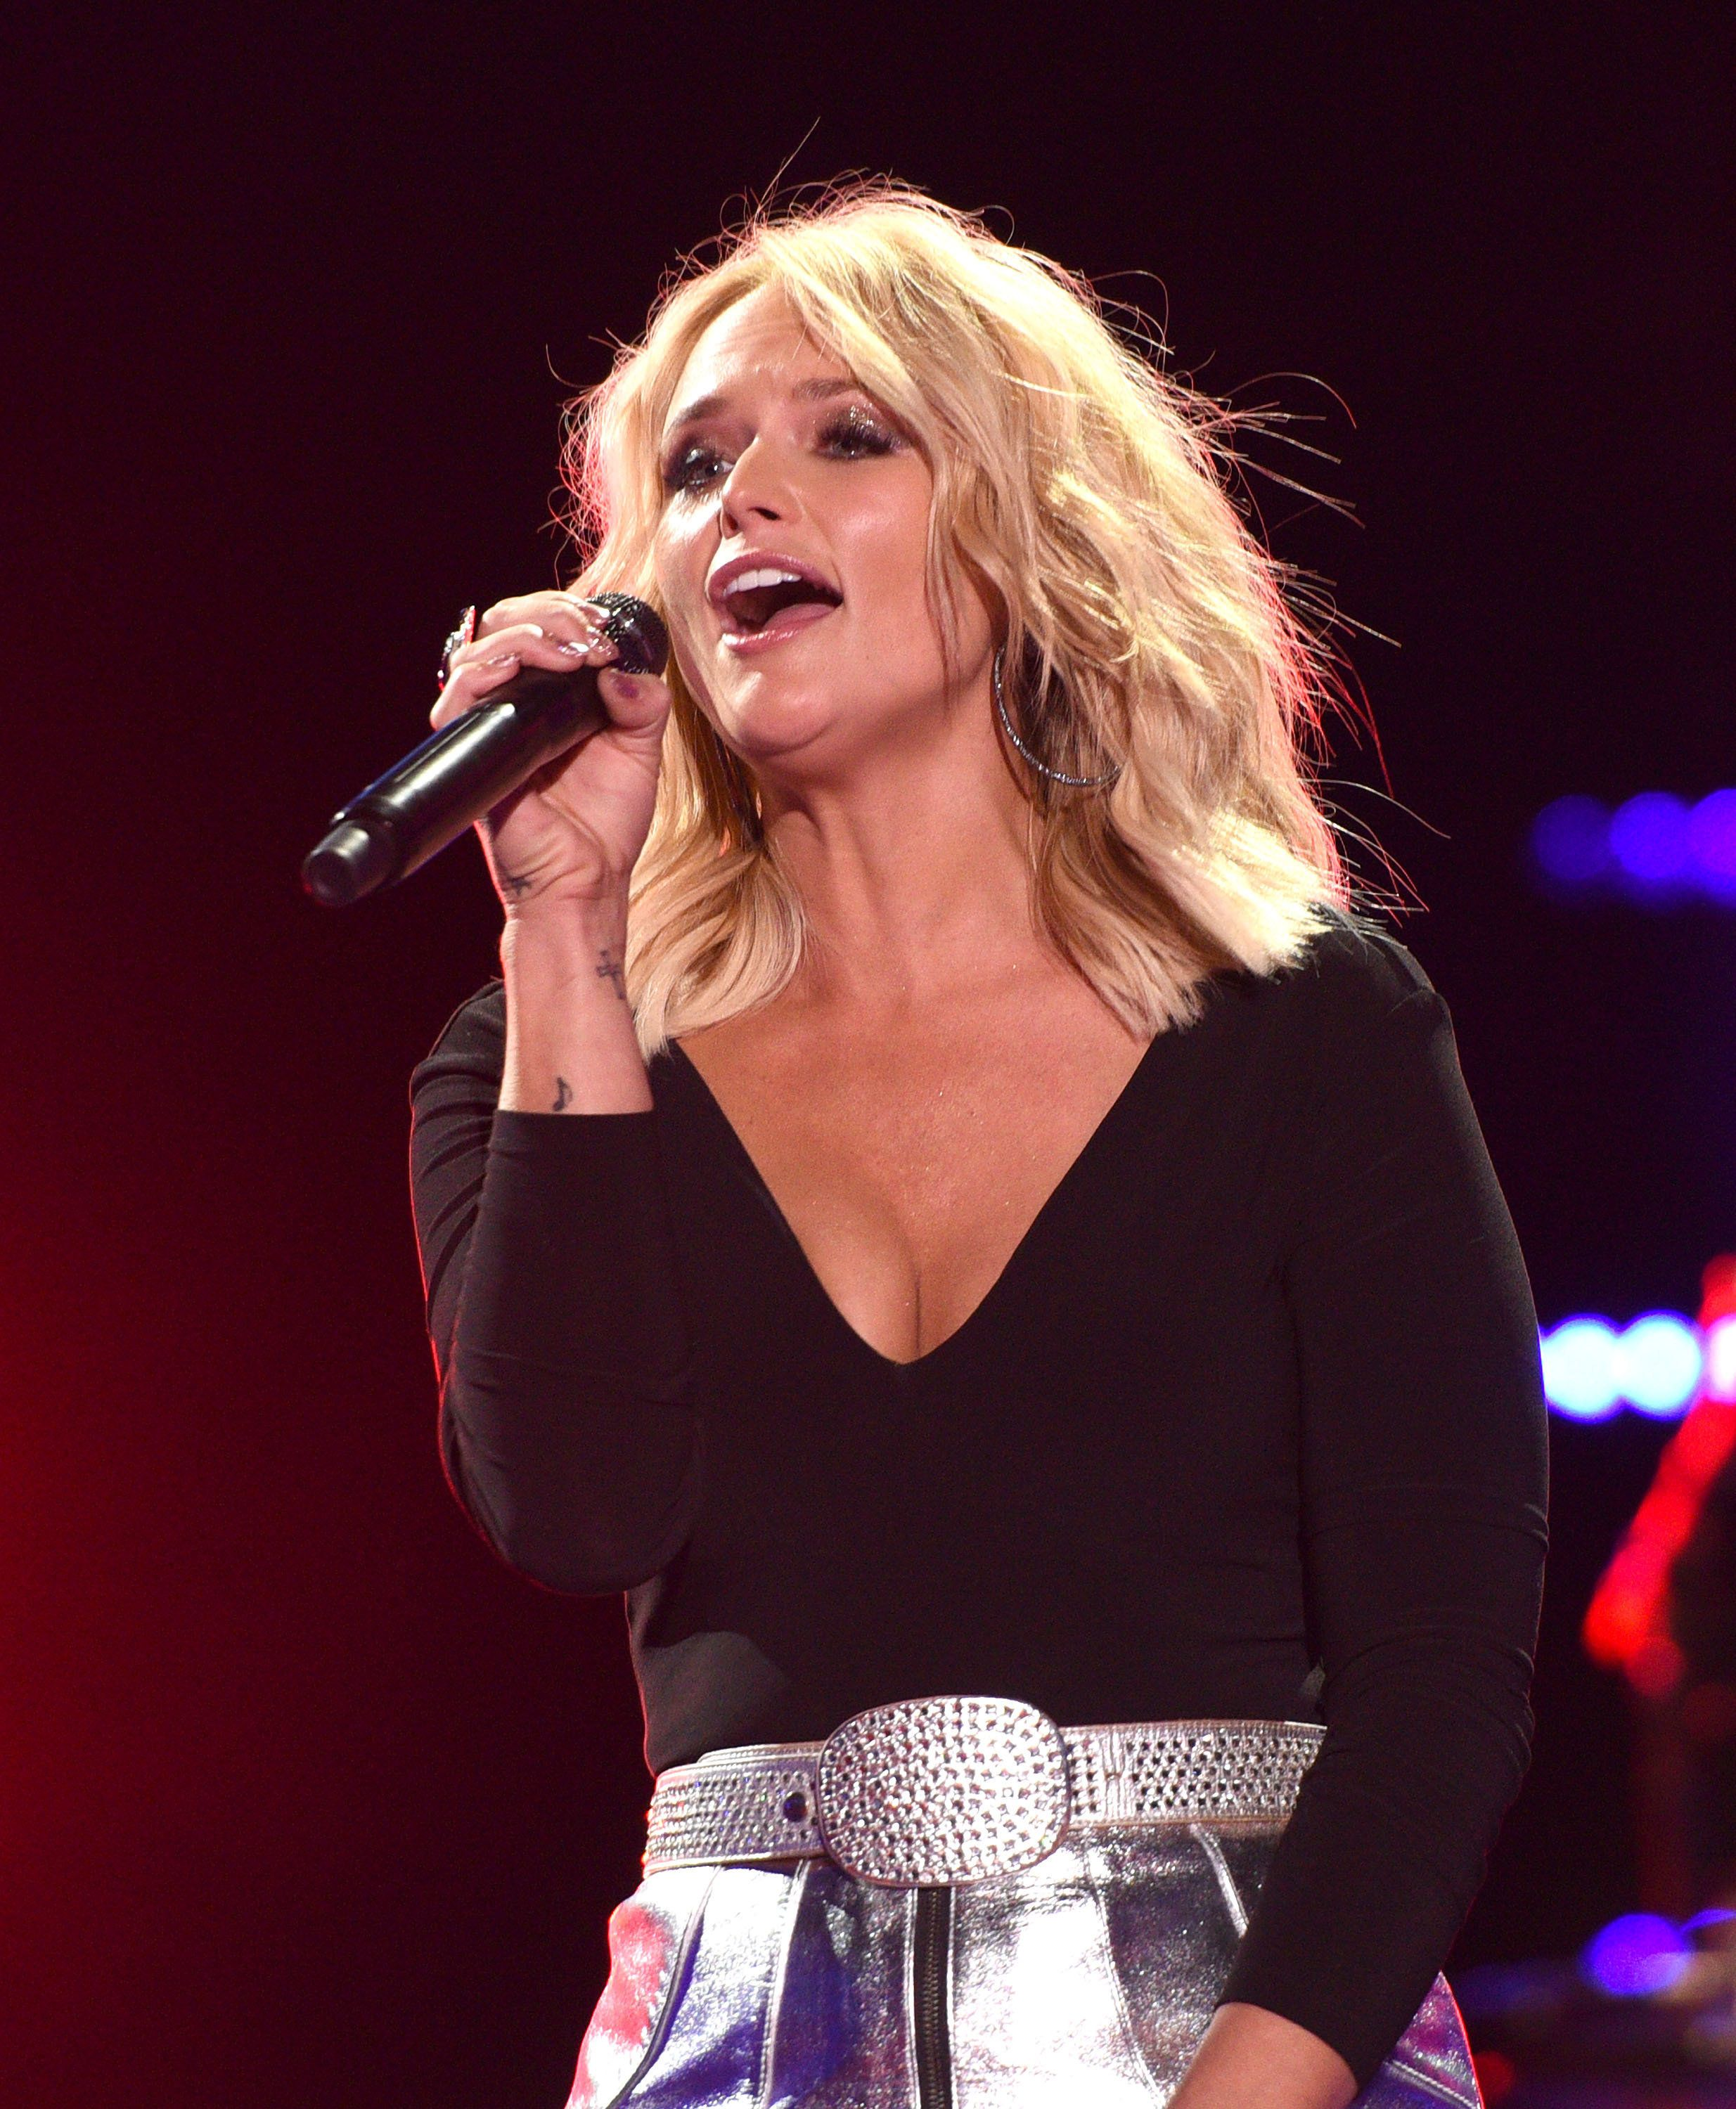 NASHVILLE, TN - JUNE 09:  Miranda Lambert performs during the 2016 CMA Music Festival at Nissan Stadium on June 9, 2016 in Nashville, Tennessee.  (Photo by C Flanigan/FilmMagic)